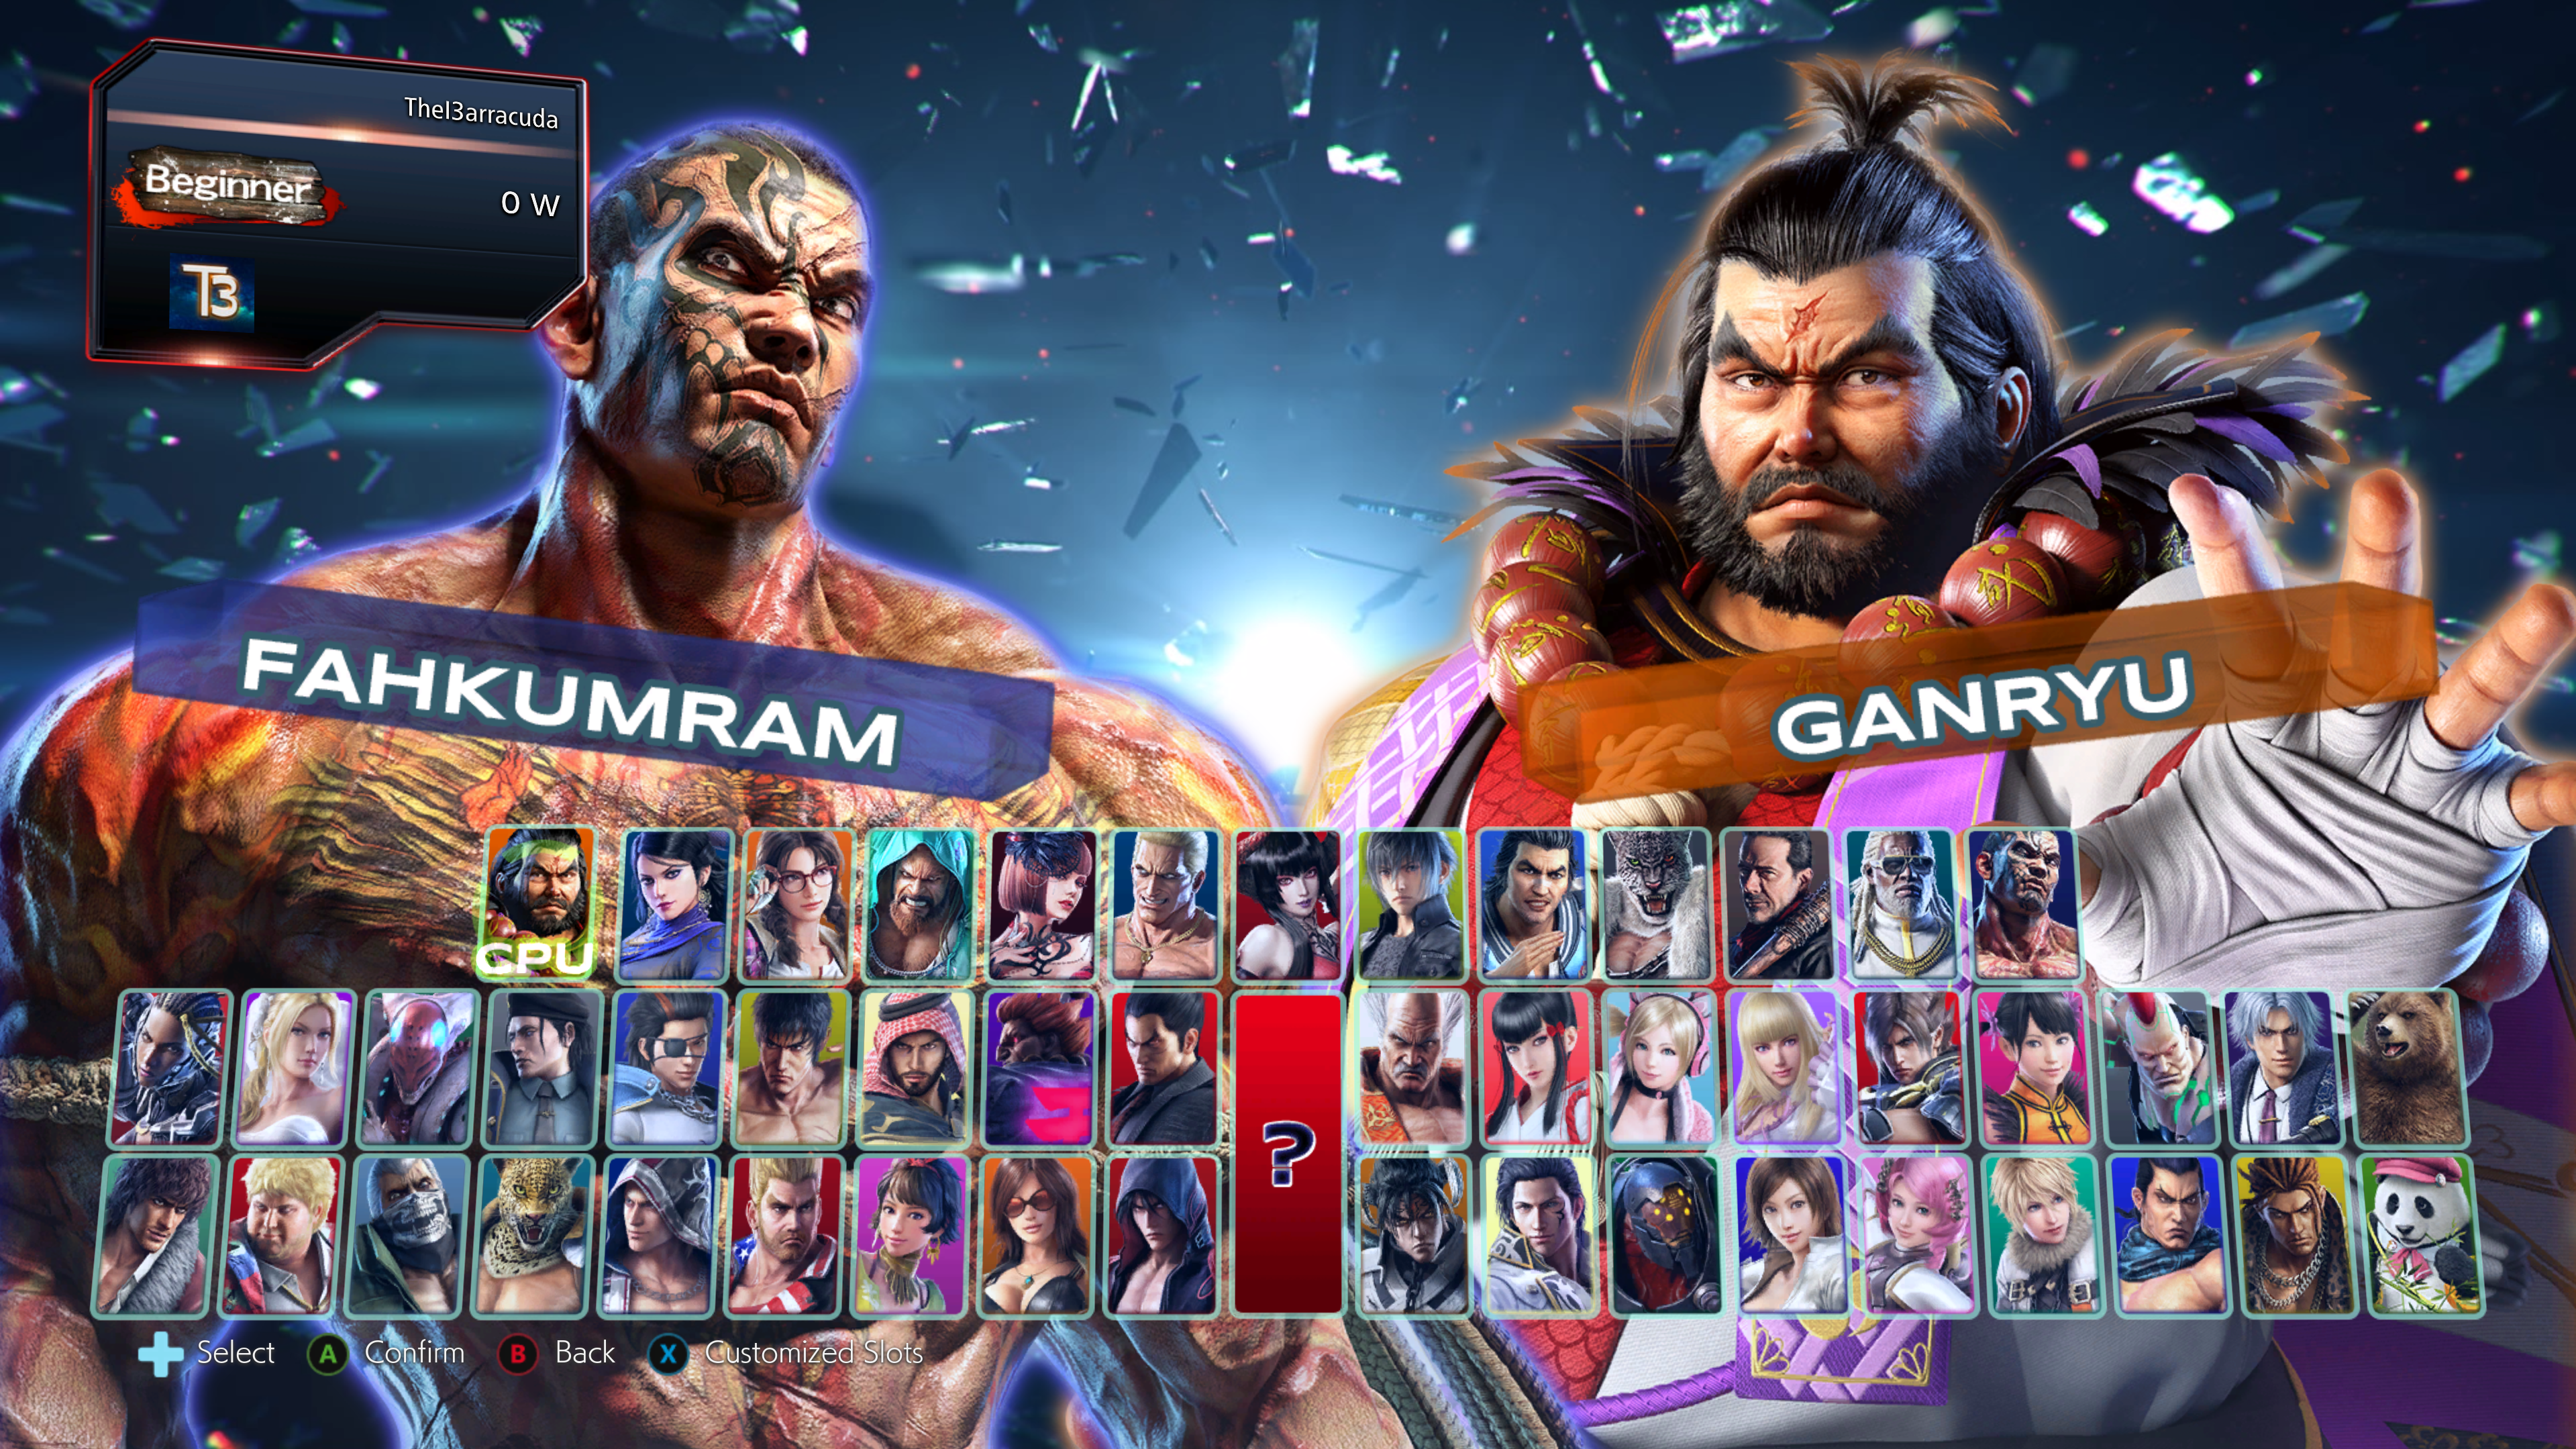 Tekken 4 Style Character Select By Thei3arracuda On Deviantart